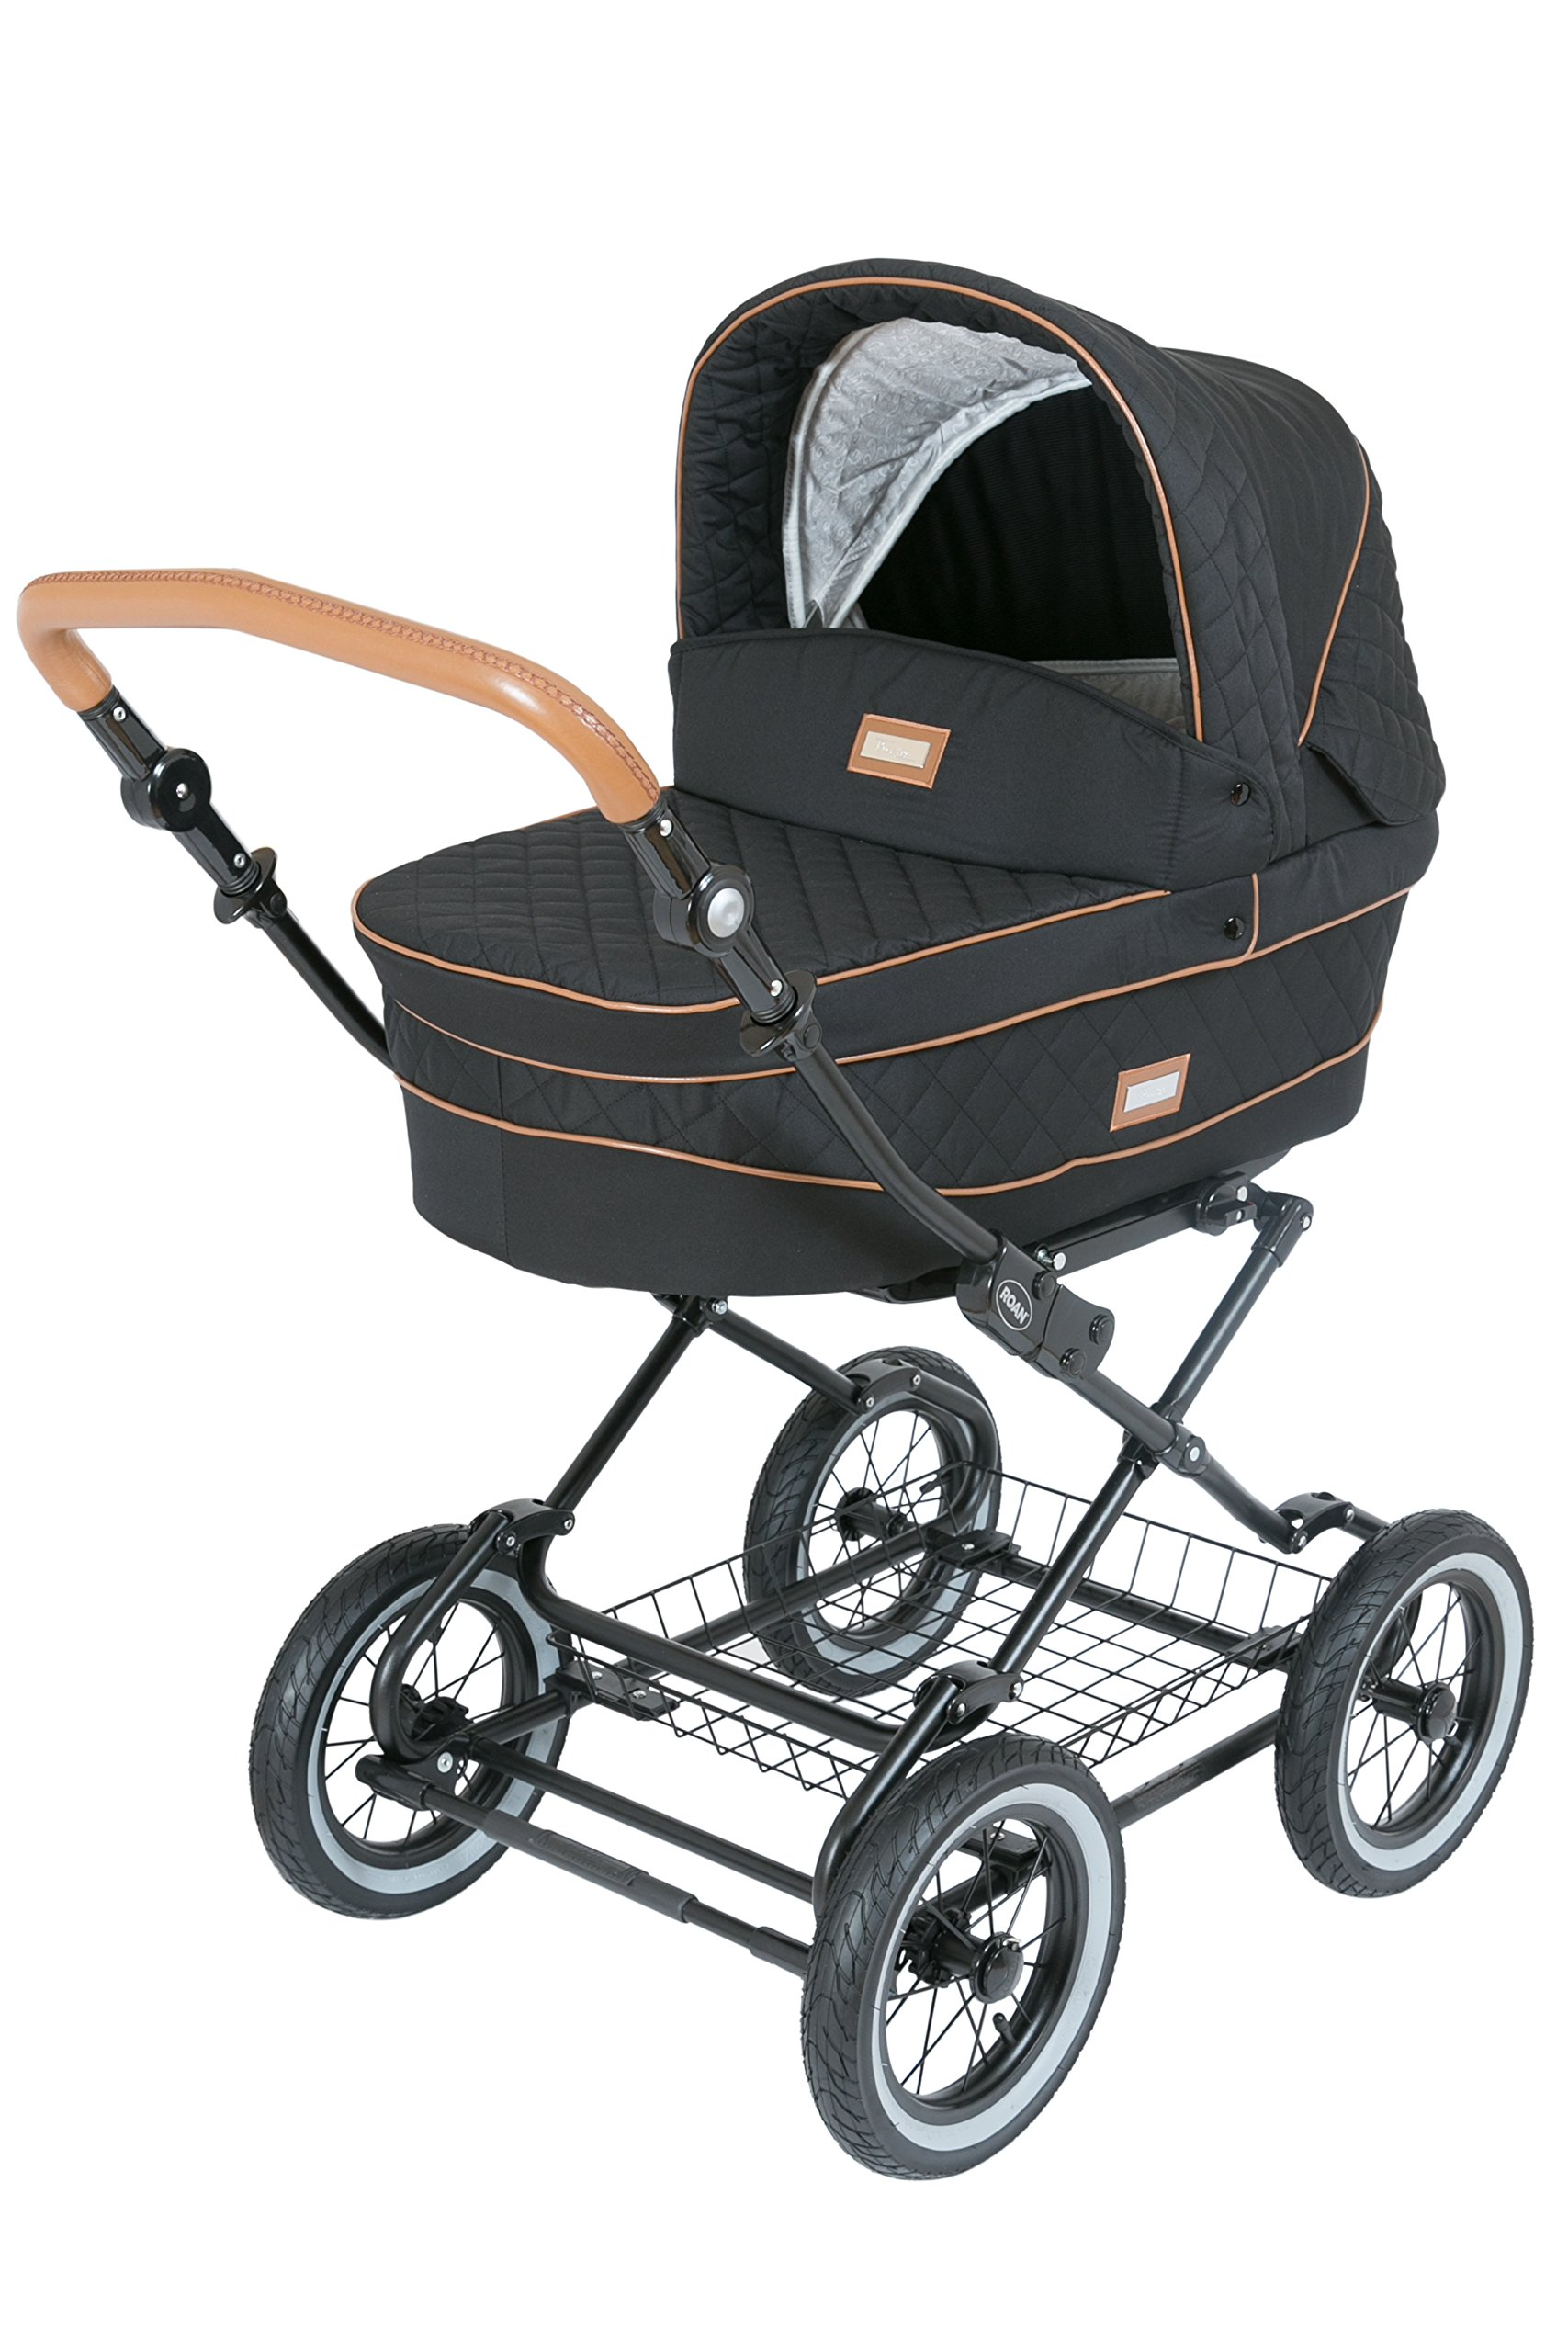 Luxury Roan Kortina 2-in-1 Pram Stroller Pushchair with Big Baby Bassinet and Toddler Reclining Seat with Five Point Safety System UV Proof Canopy and Storage Basket for child up to 3 year (graphite) by ROAN (Image #3)